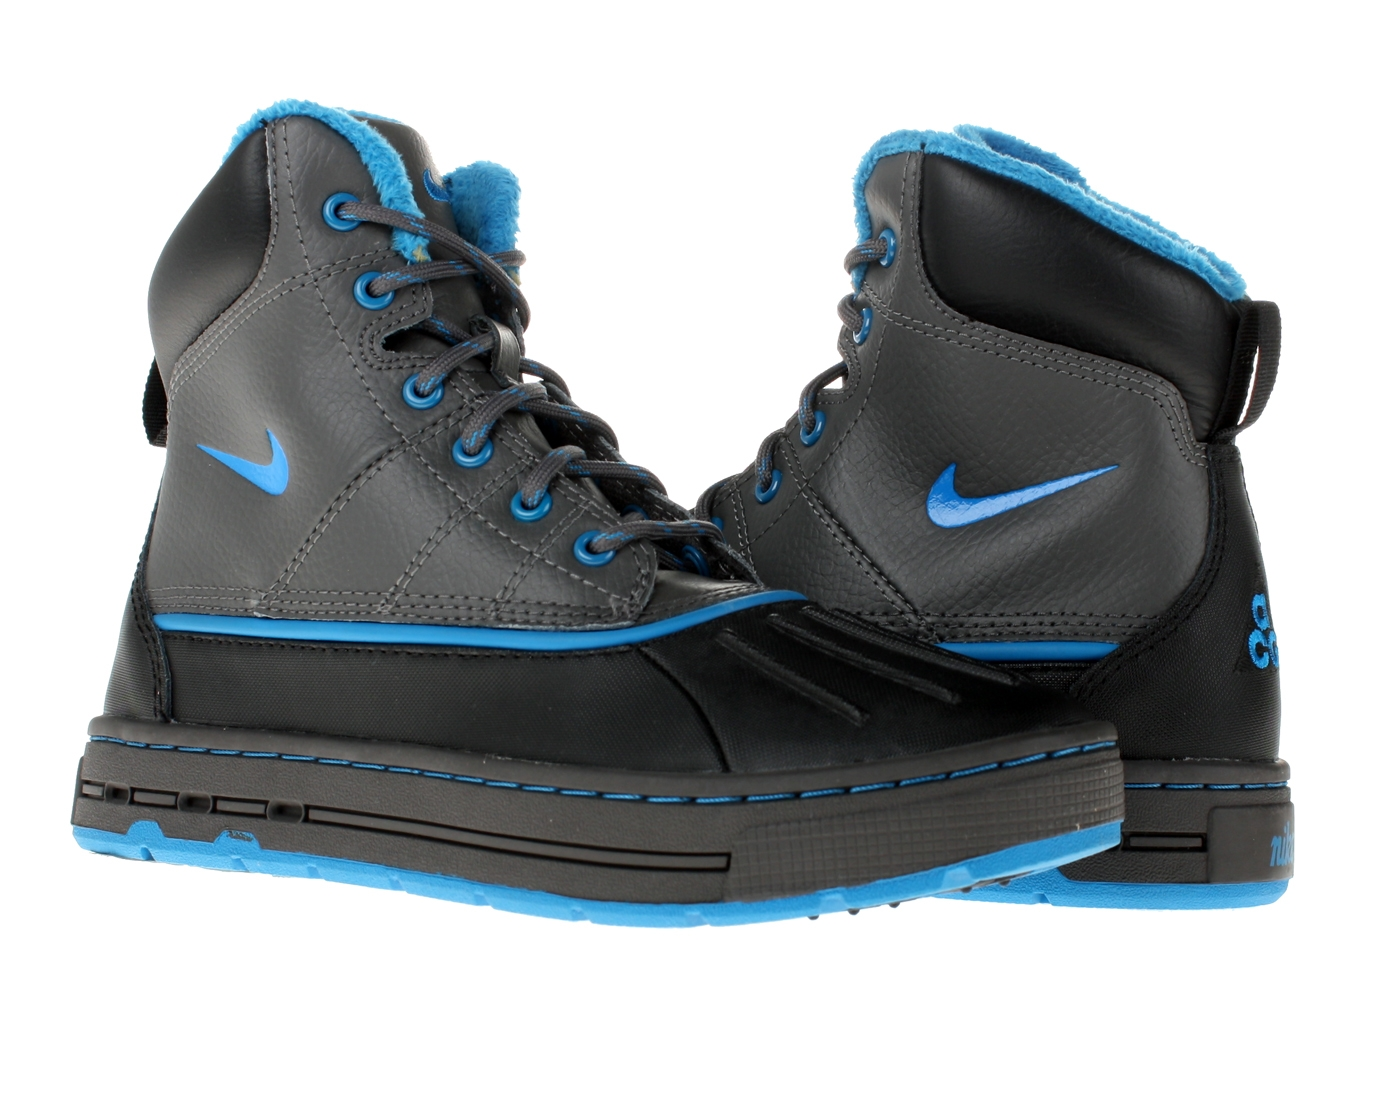 Nike Boots For Boys Youth  f26a1b91ad98